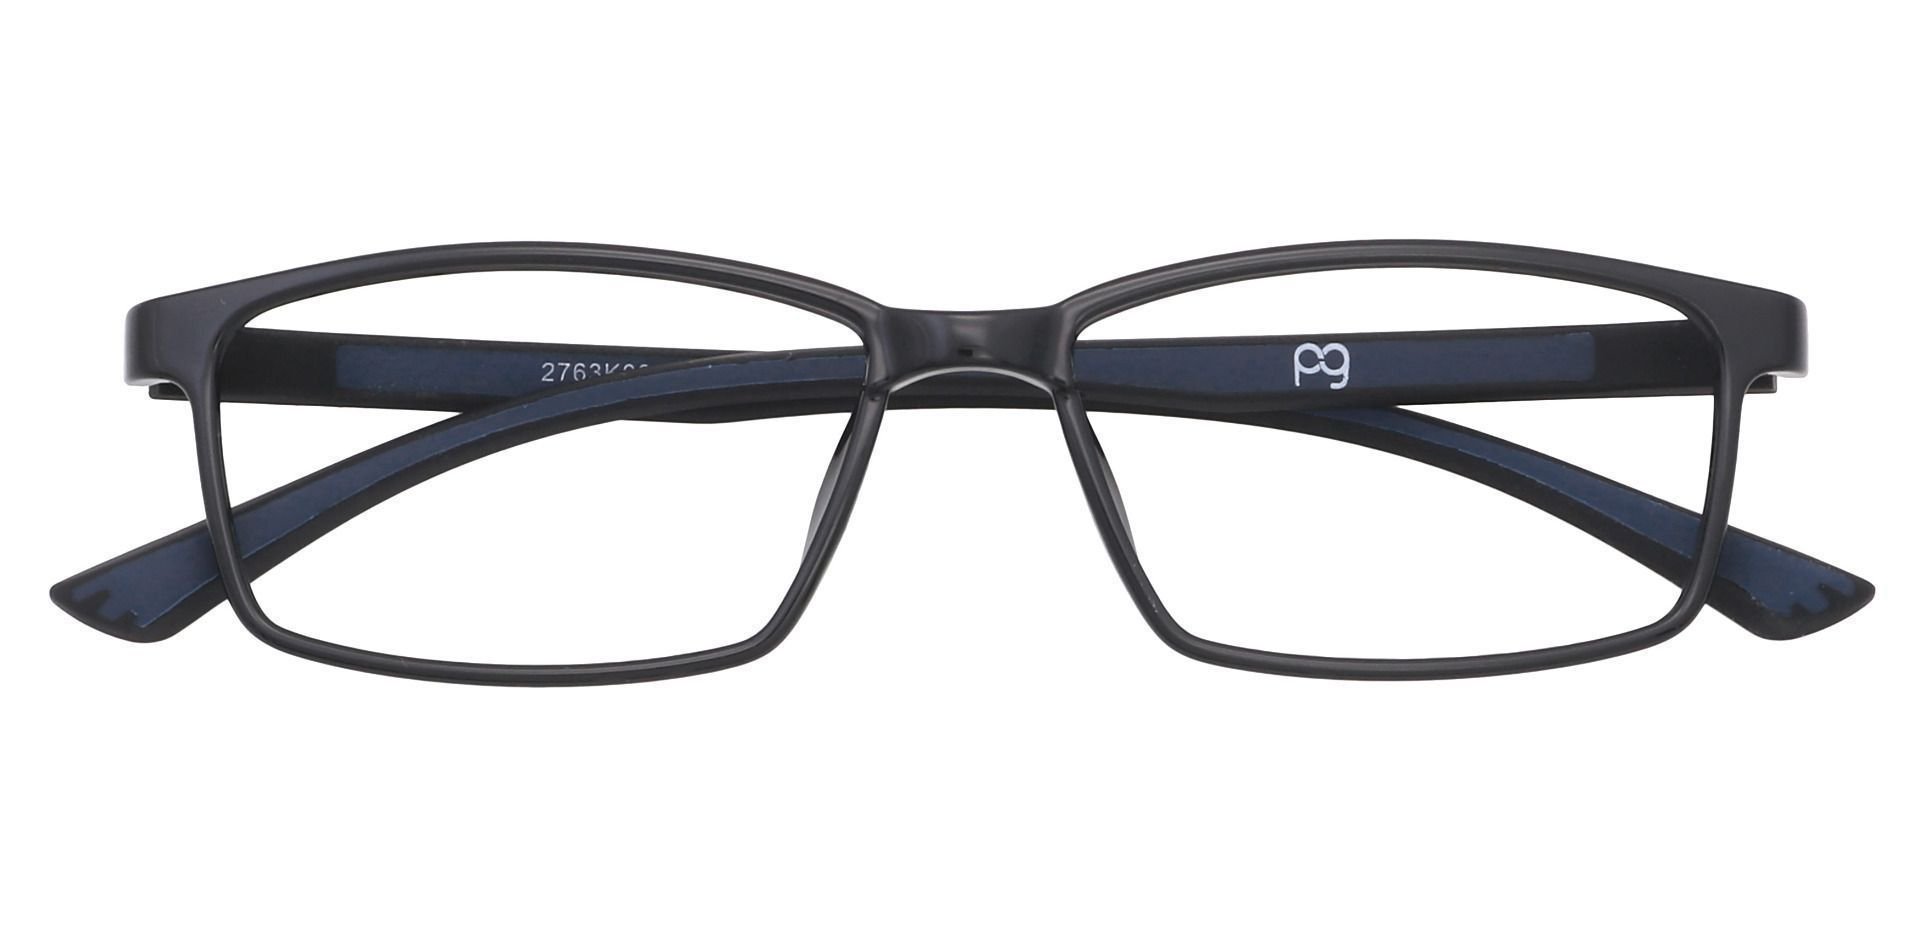 Summit Rectangle Prescription Glasses - Black